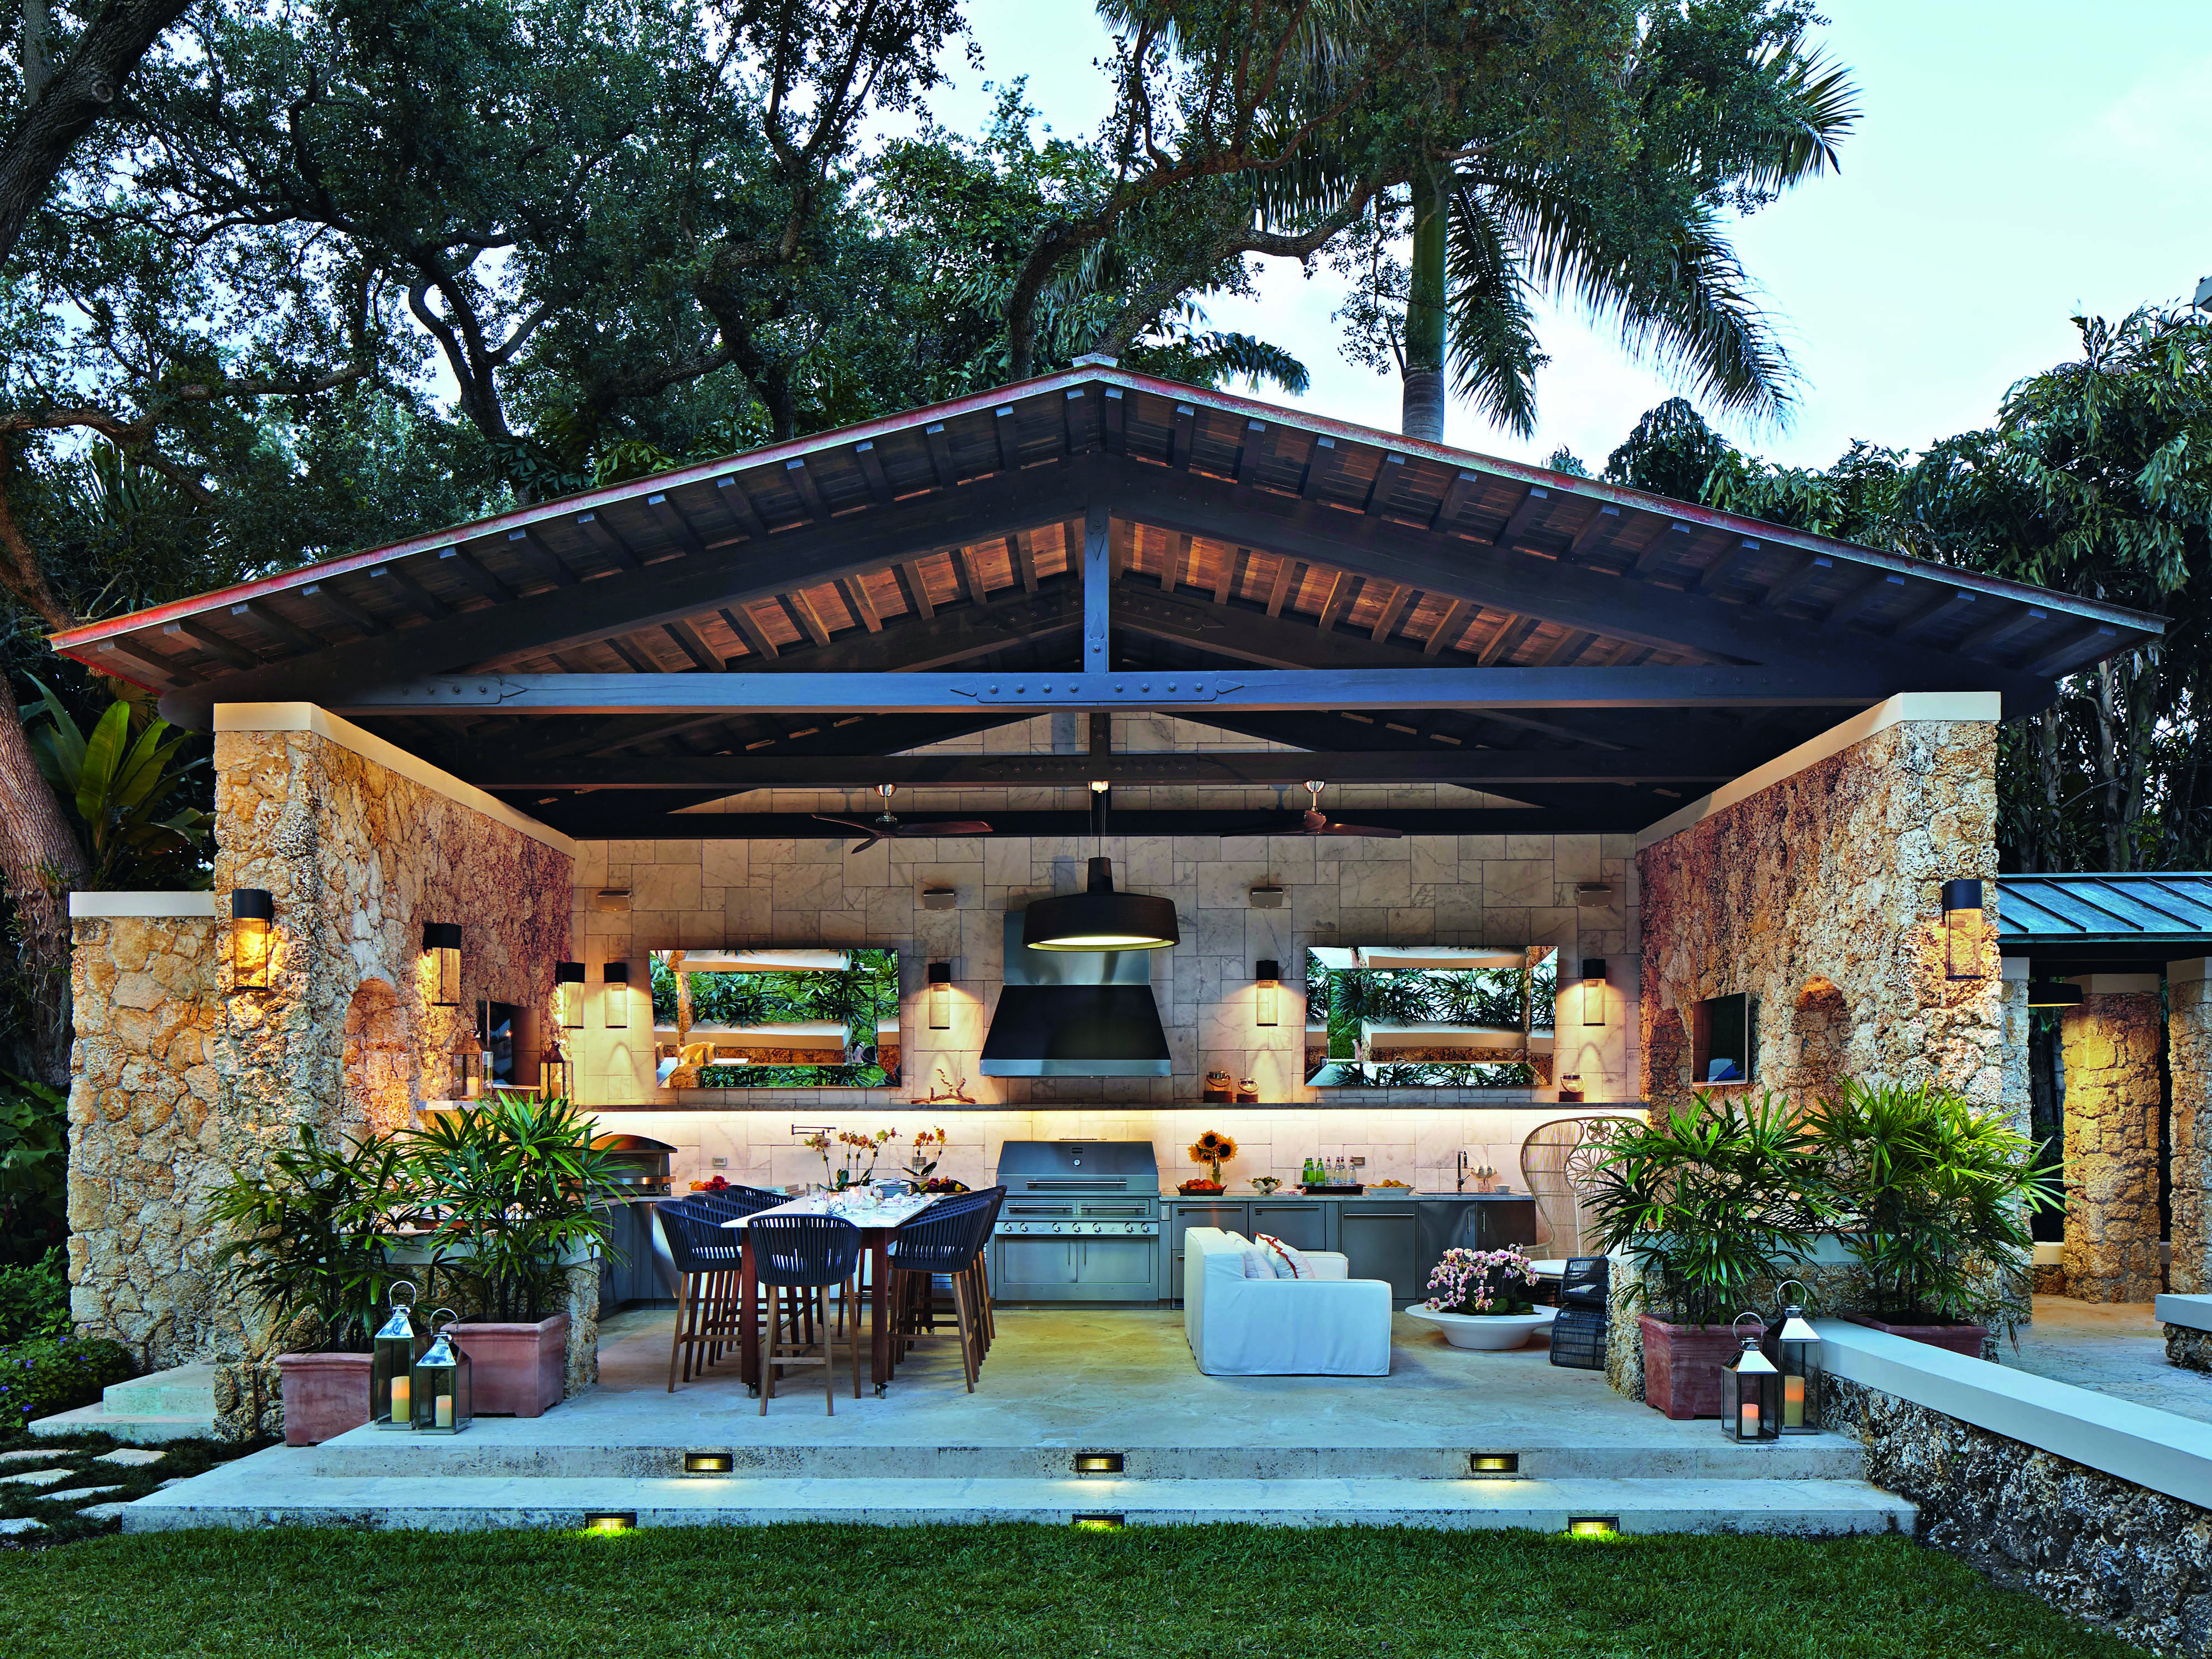 A Florida outdoor kitchen designed by Kalamazoo Outdoor Gourmet in California, inventor of the famed Hybrid Fire Grill.